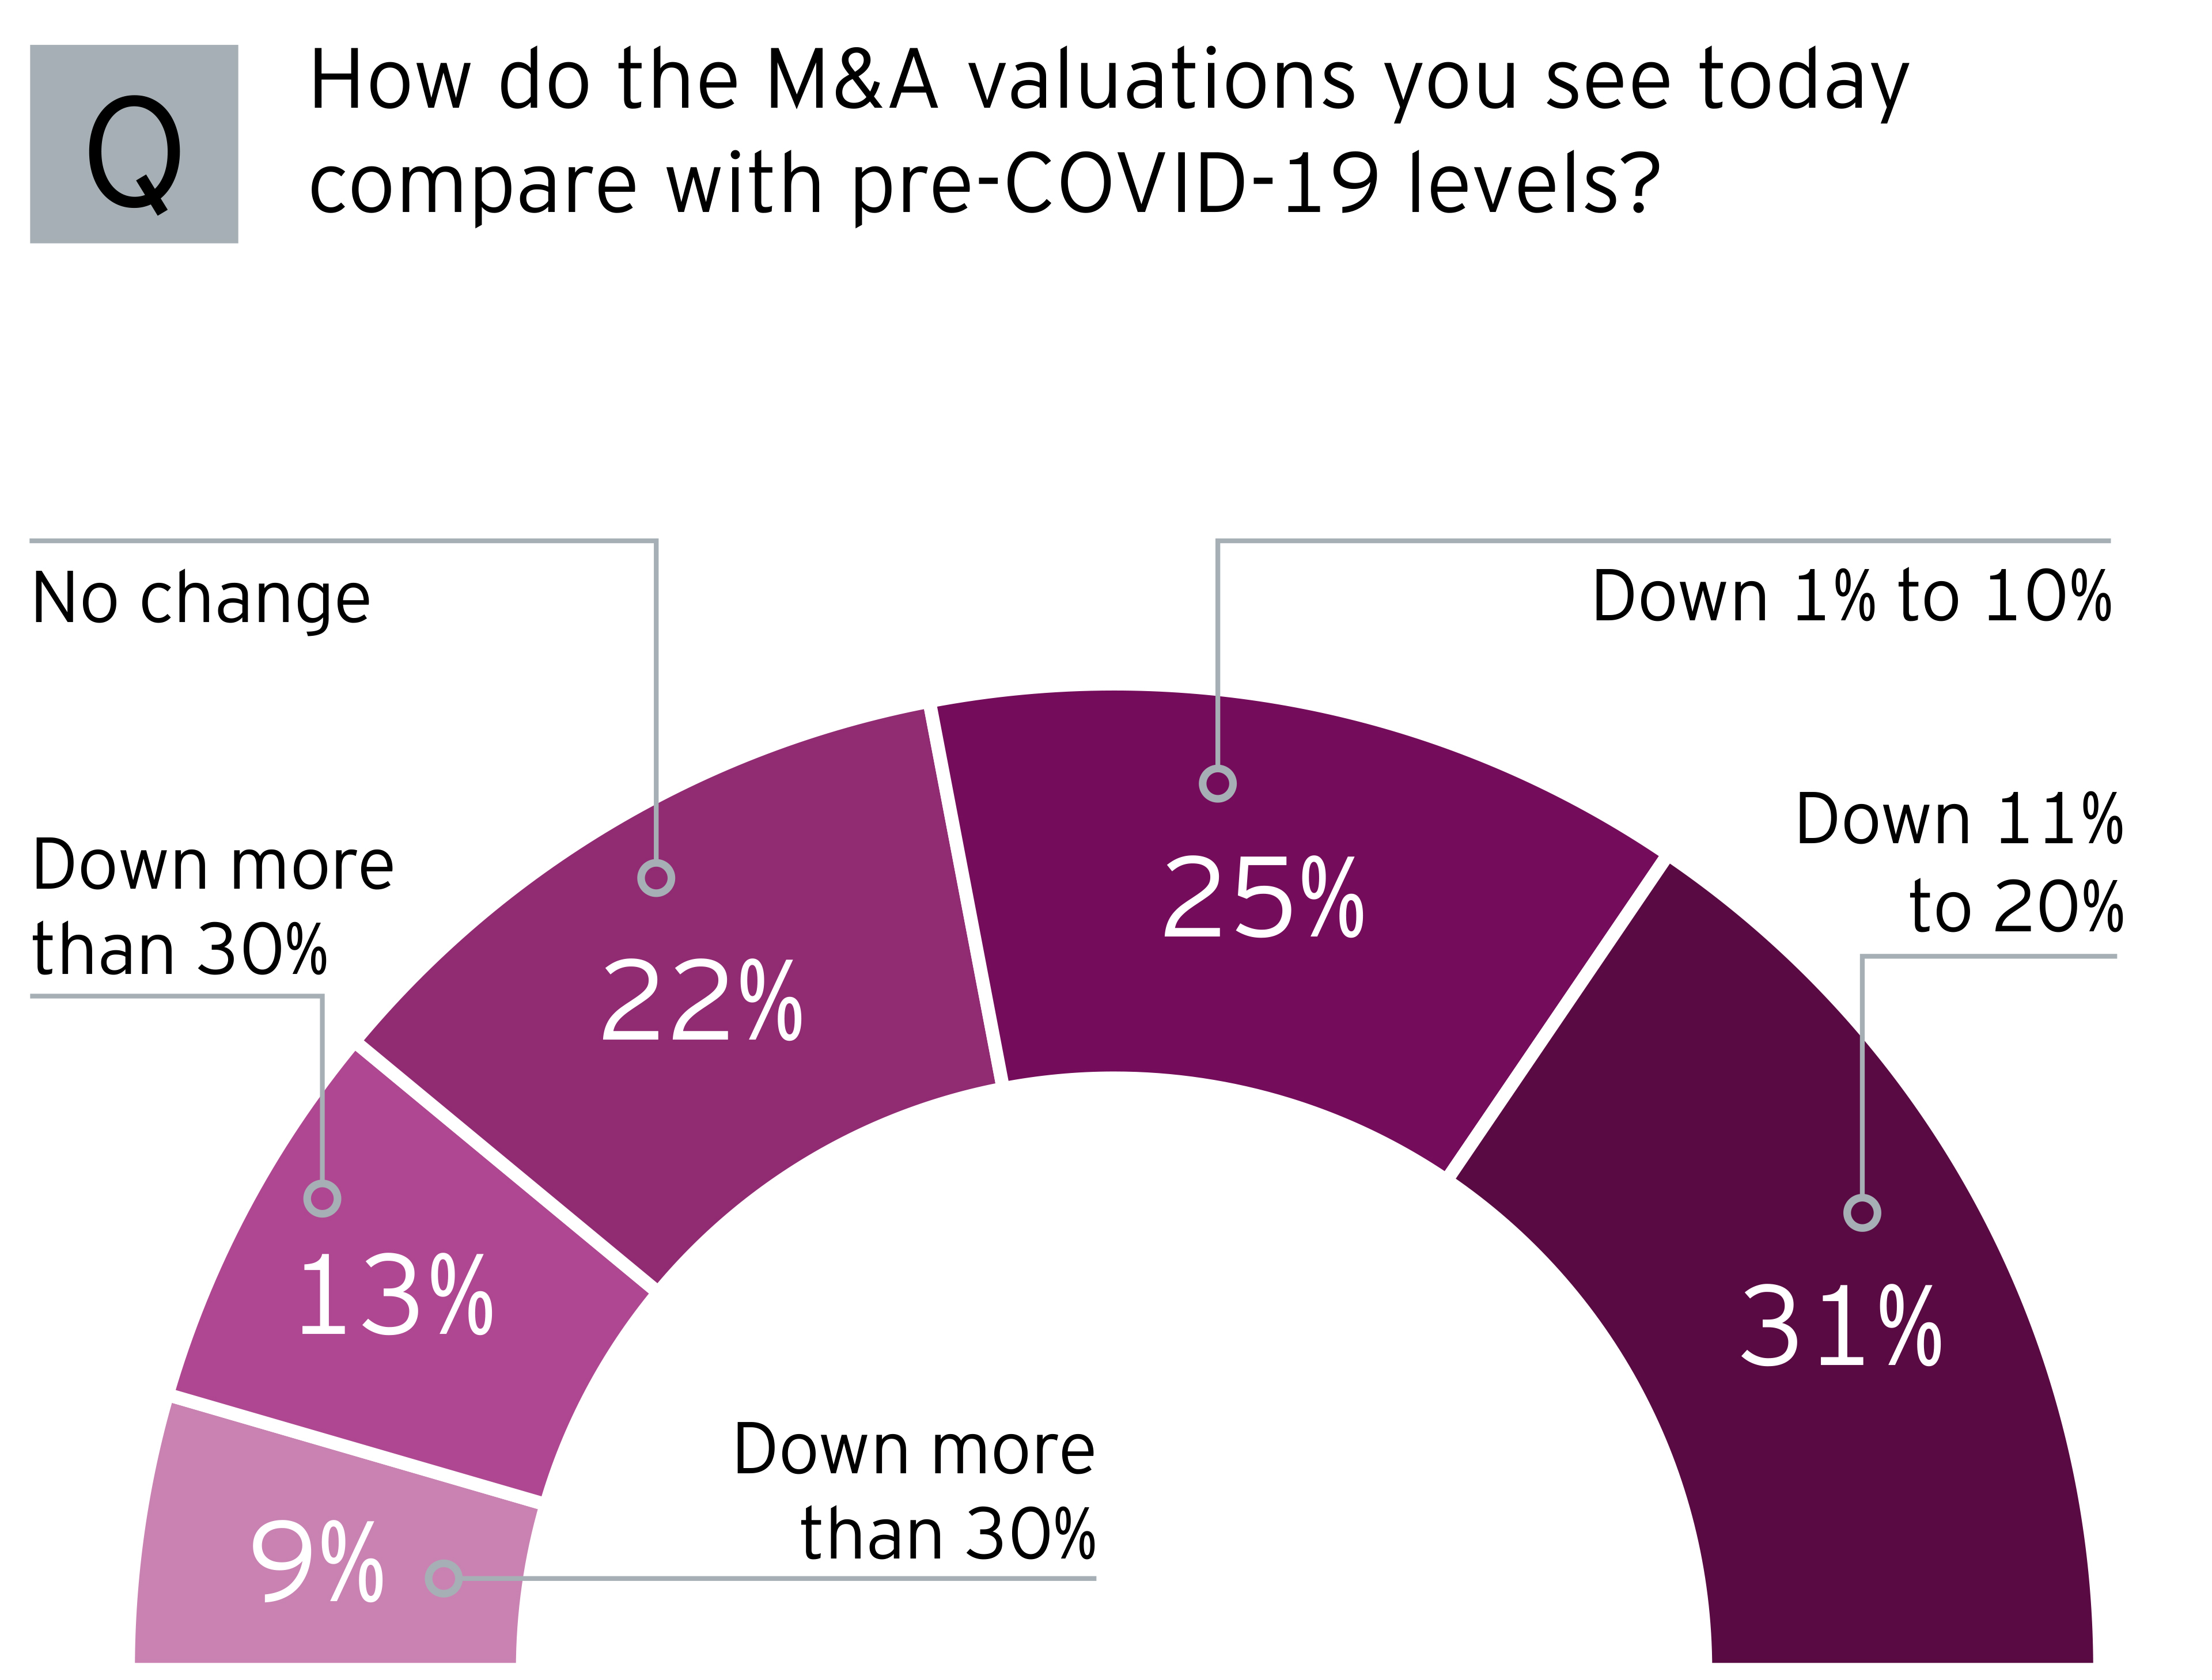 EY - M&A valuations